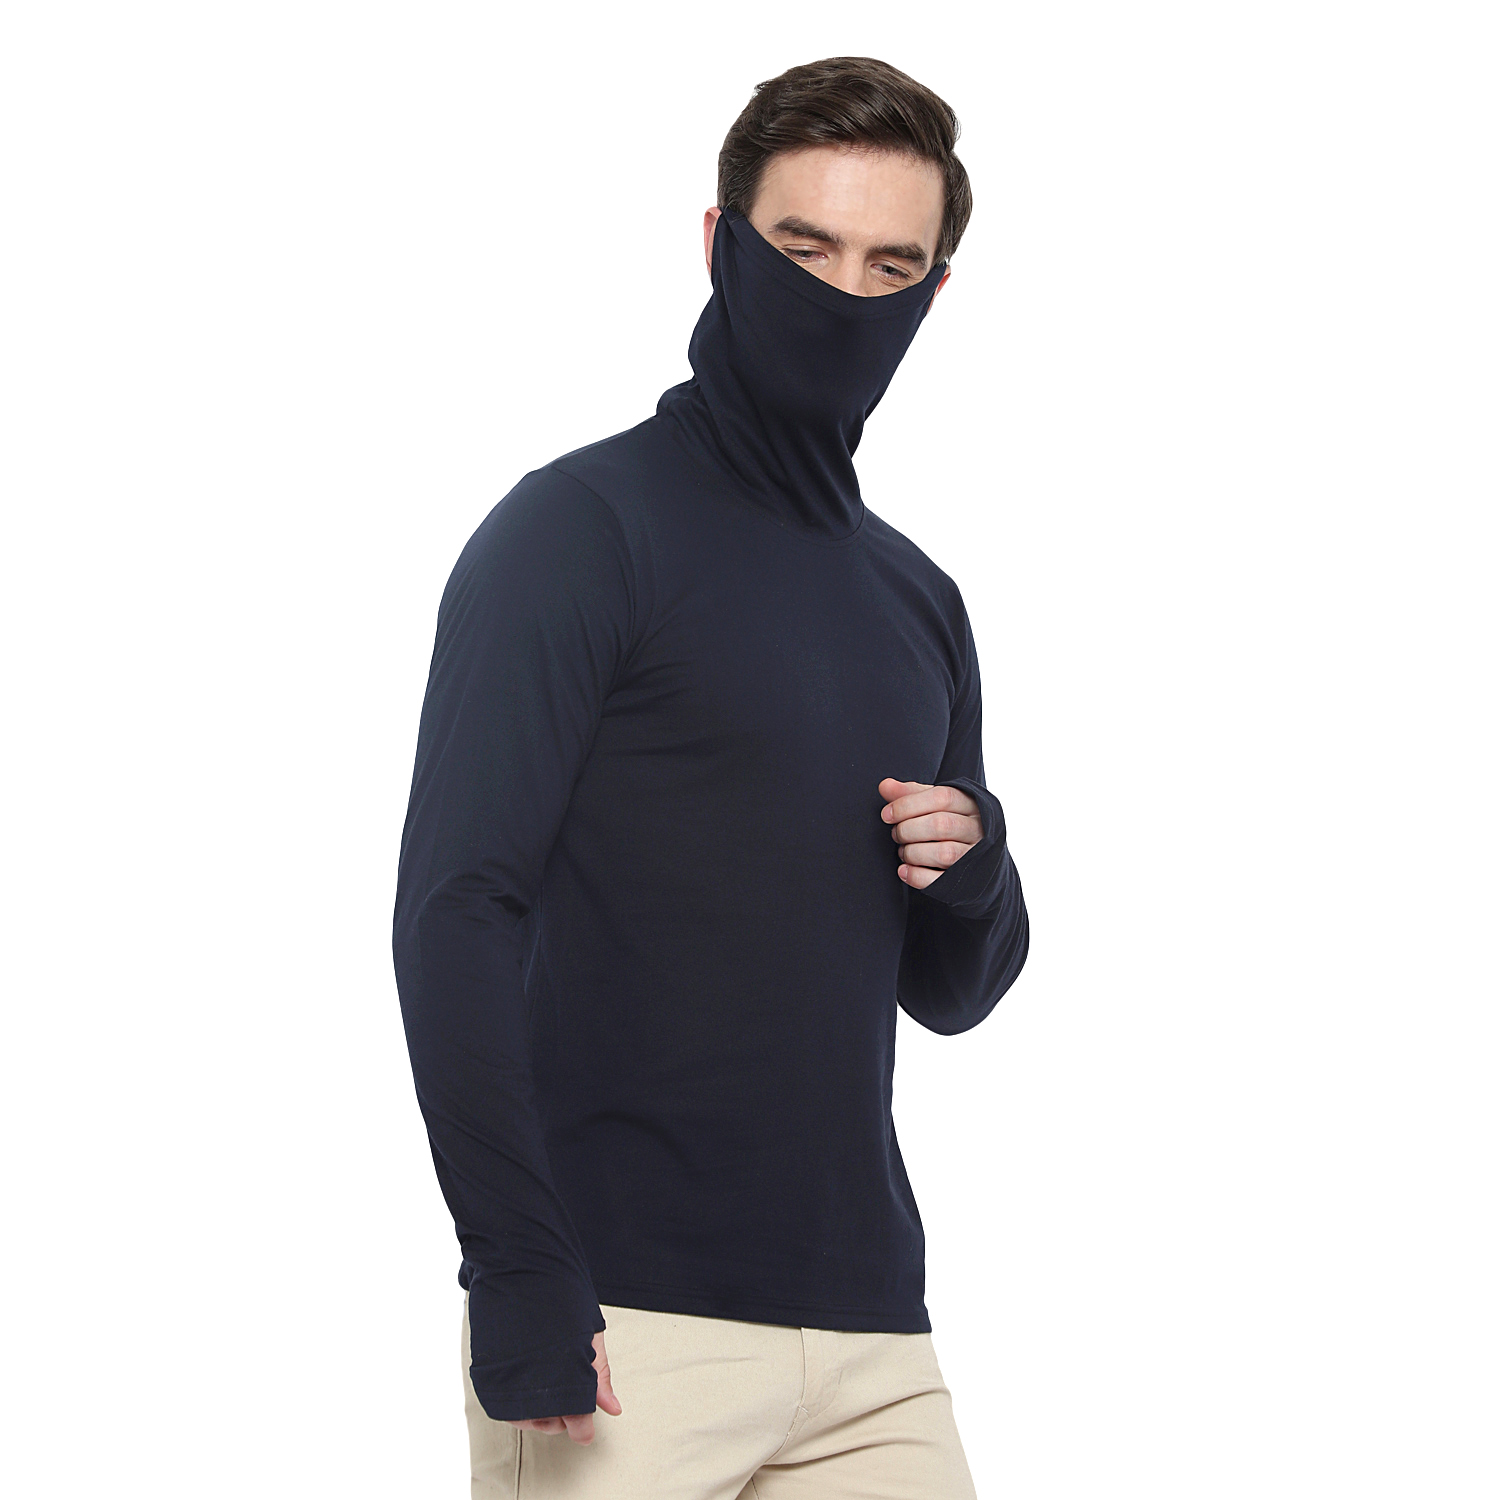 Glito Solid Navy Cowl Neck T-Shirt For Men